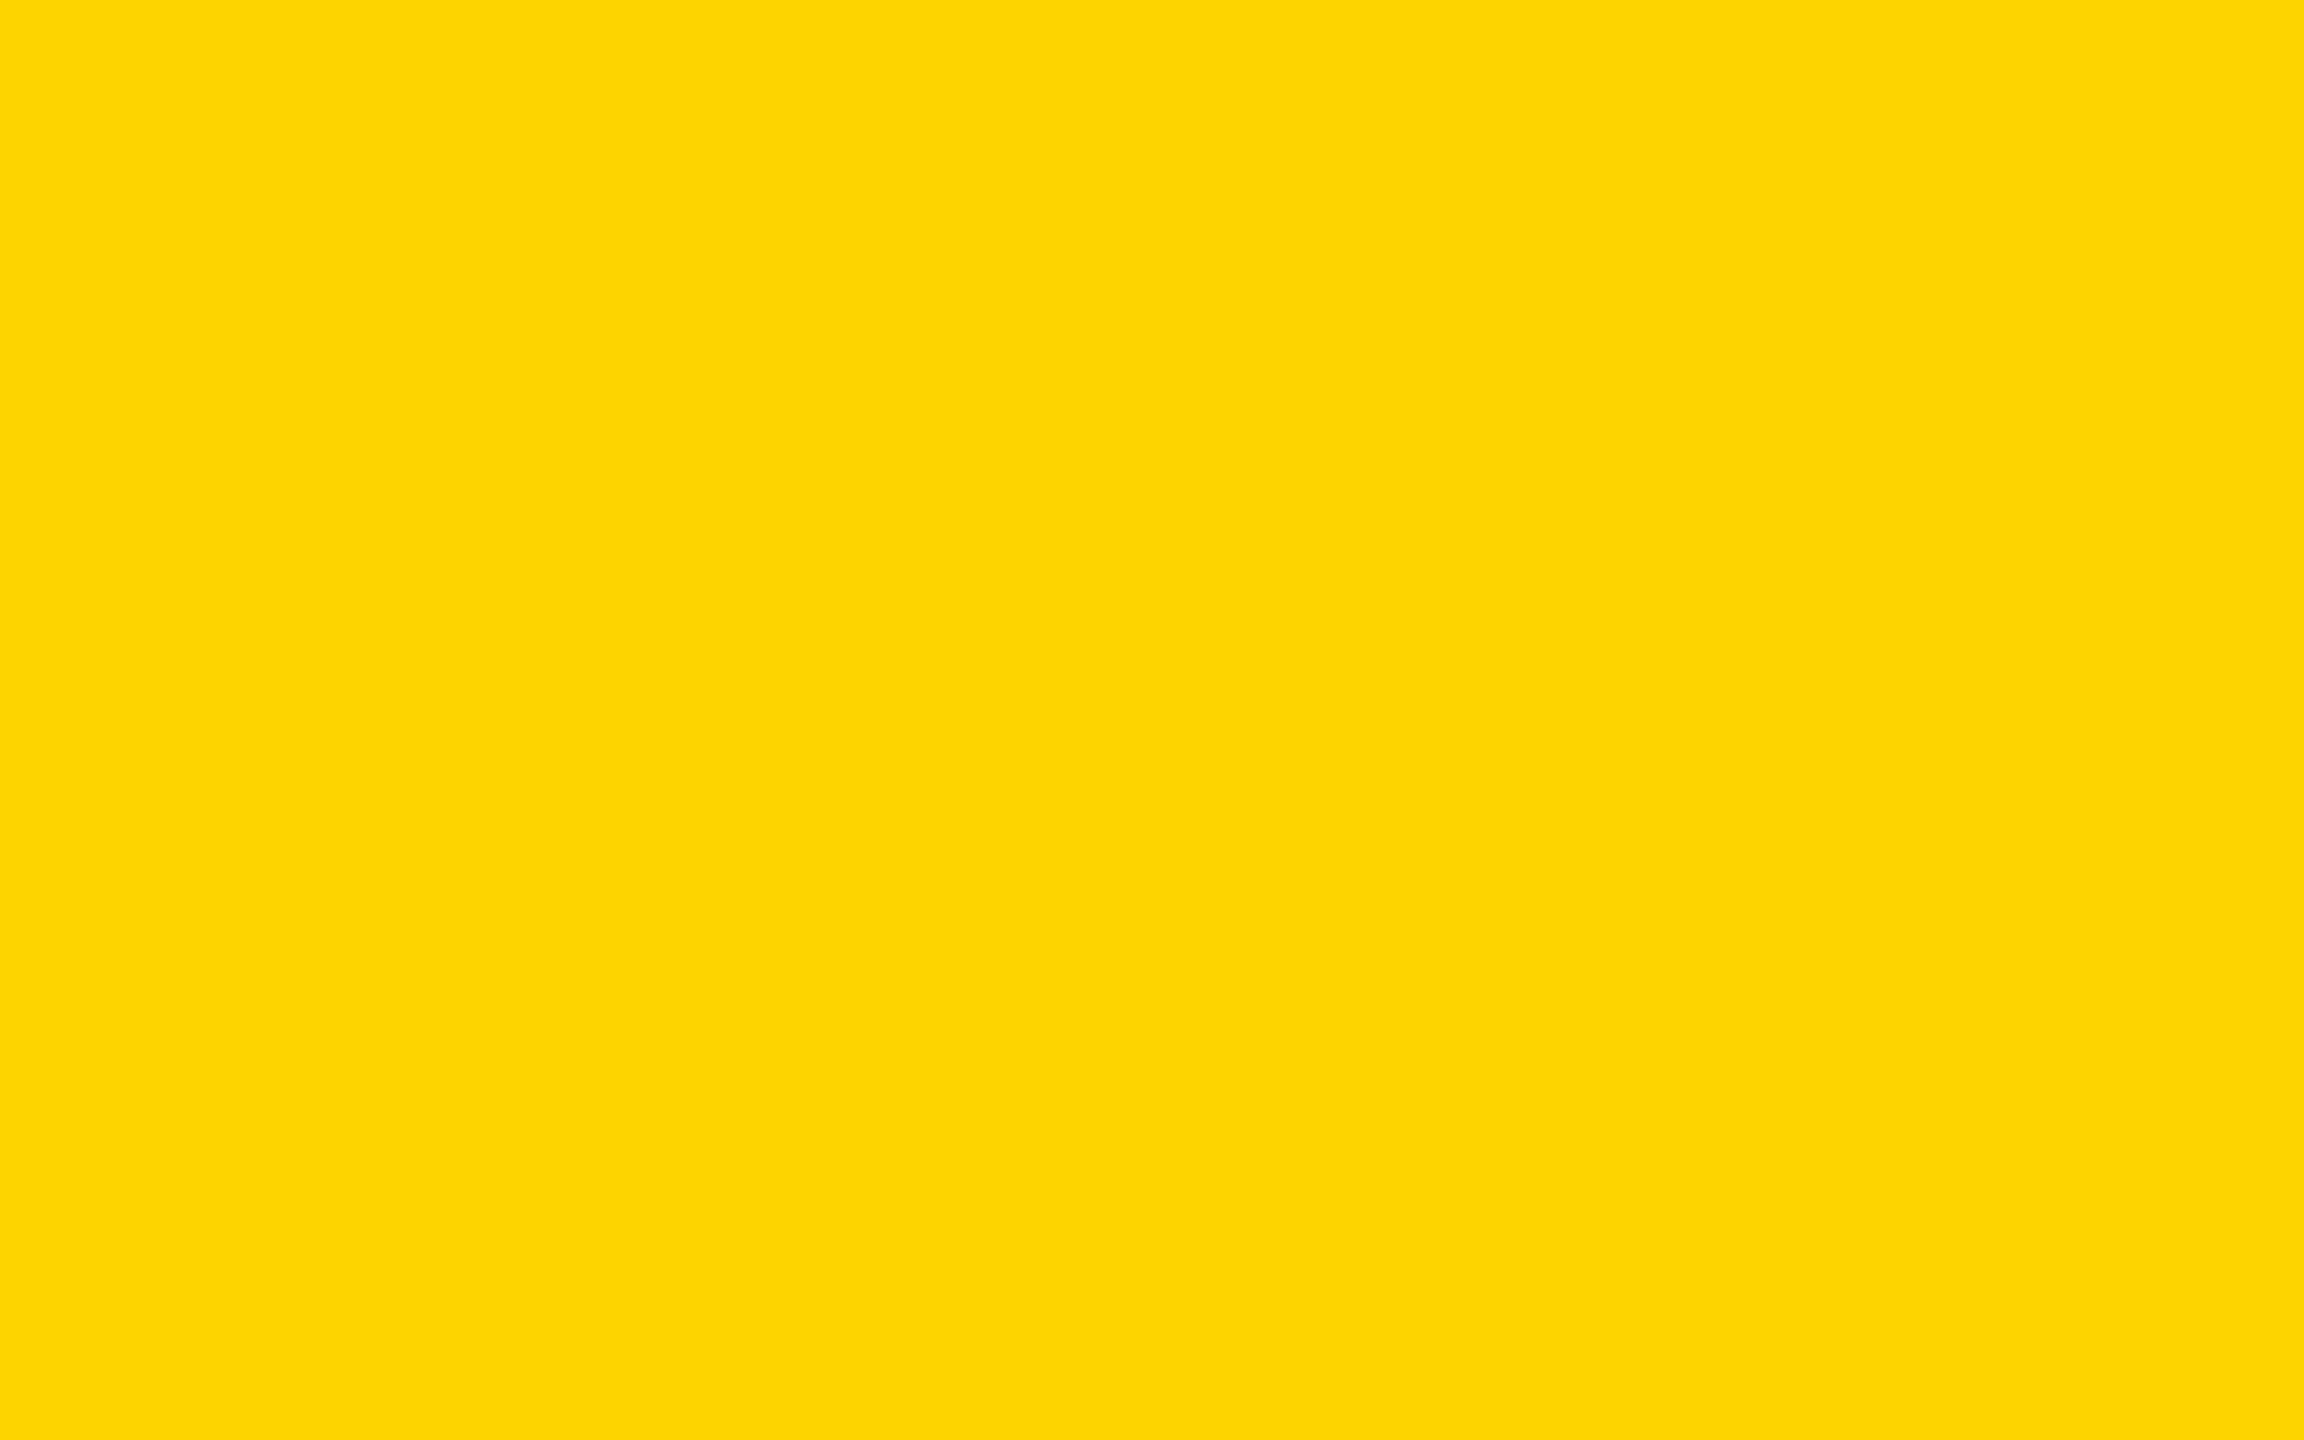 2304x1440 Yellow NCS Solid Color Background